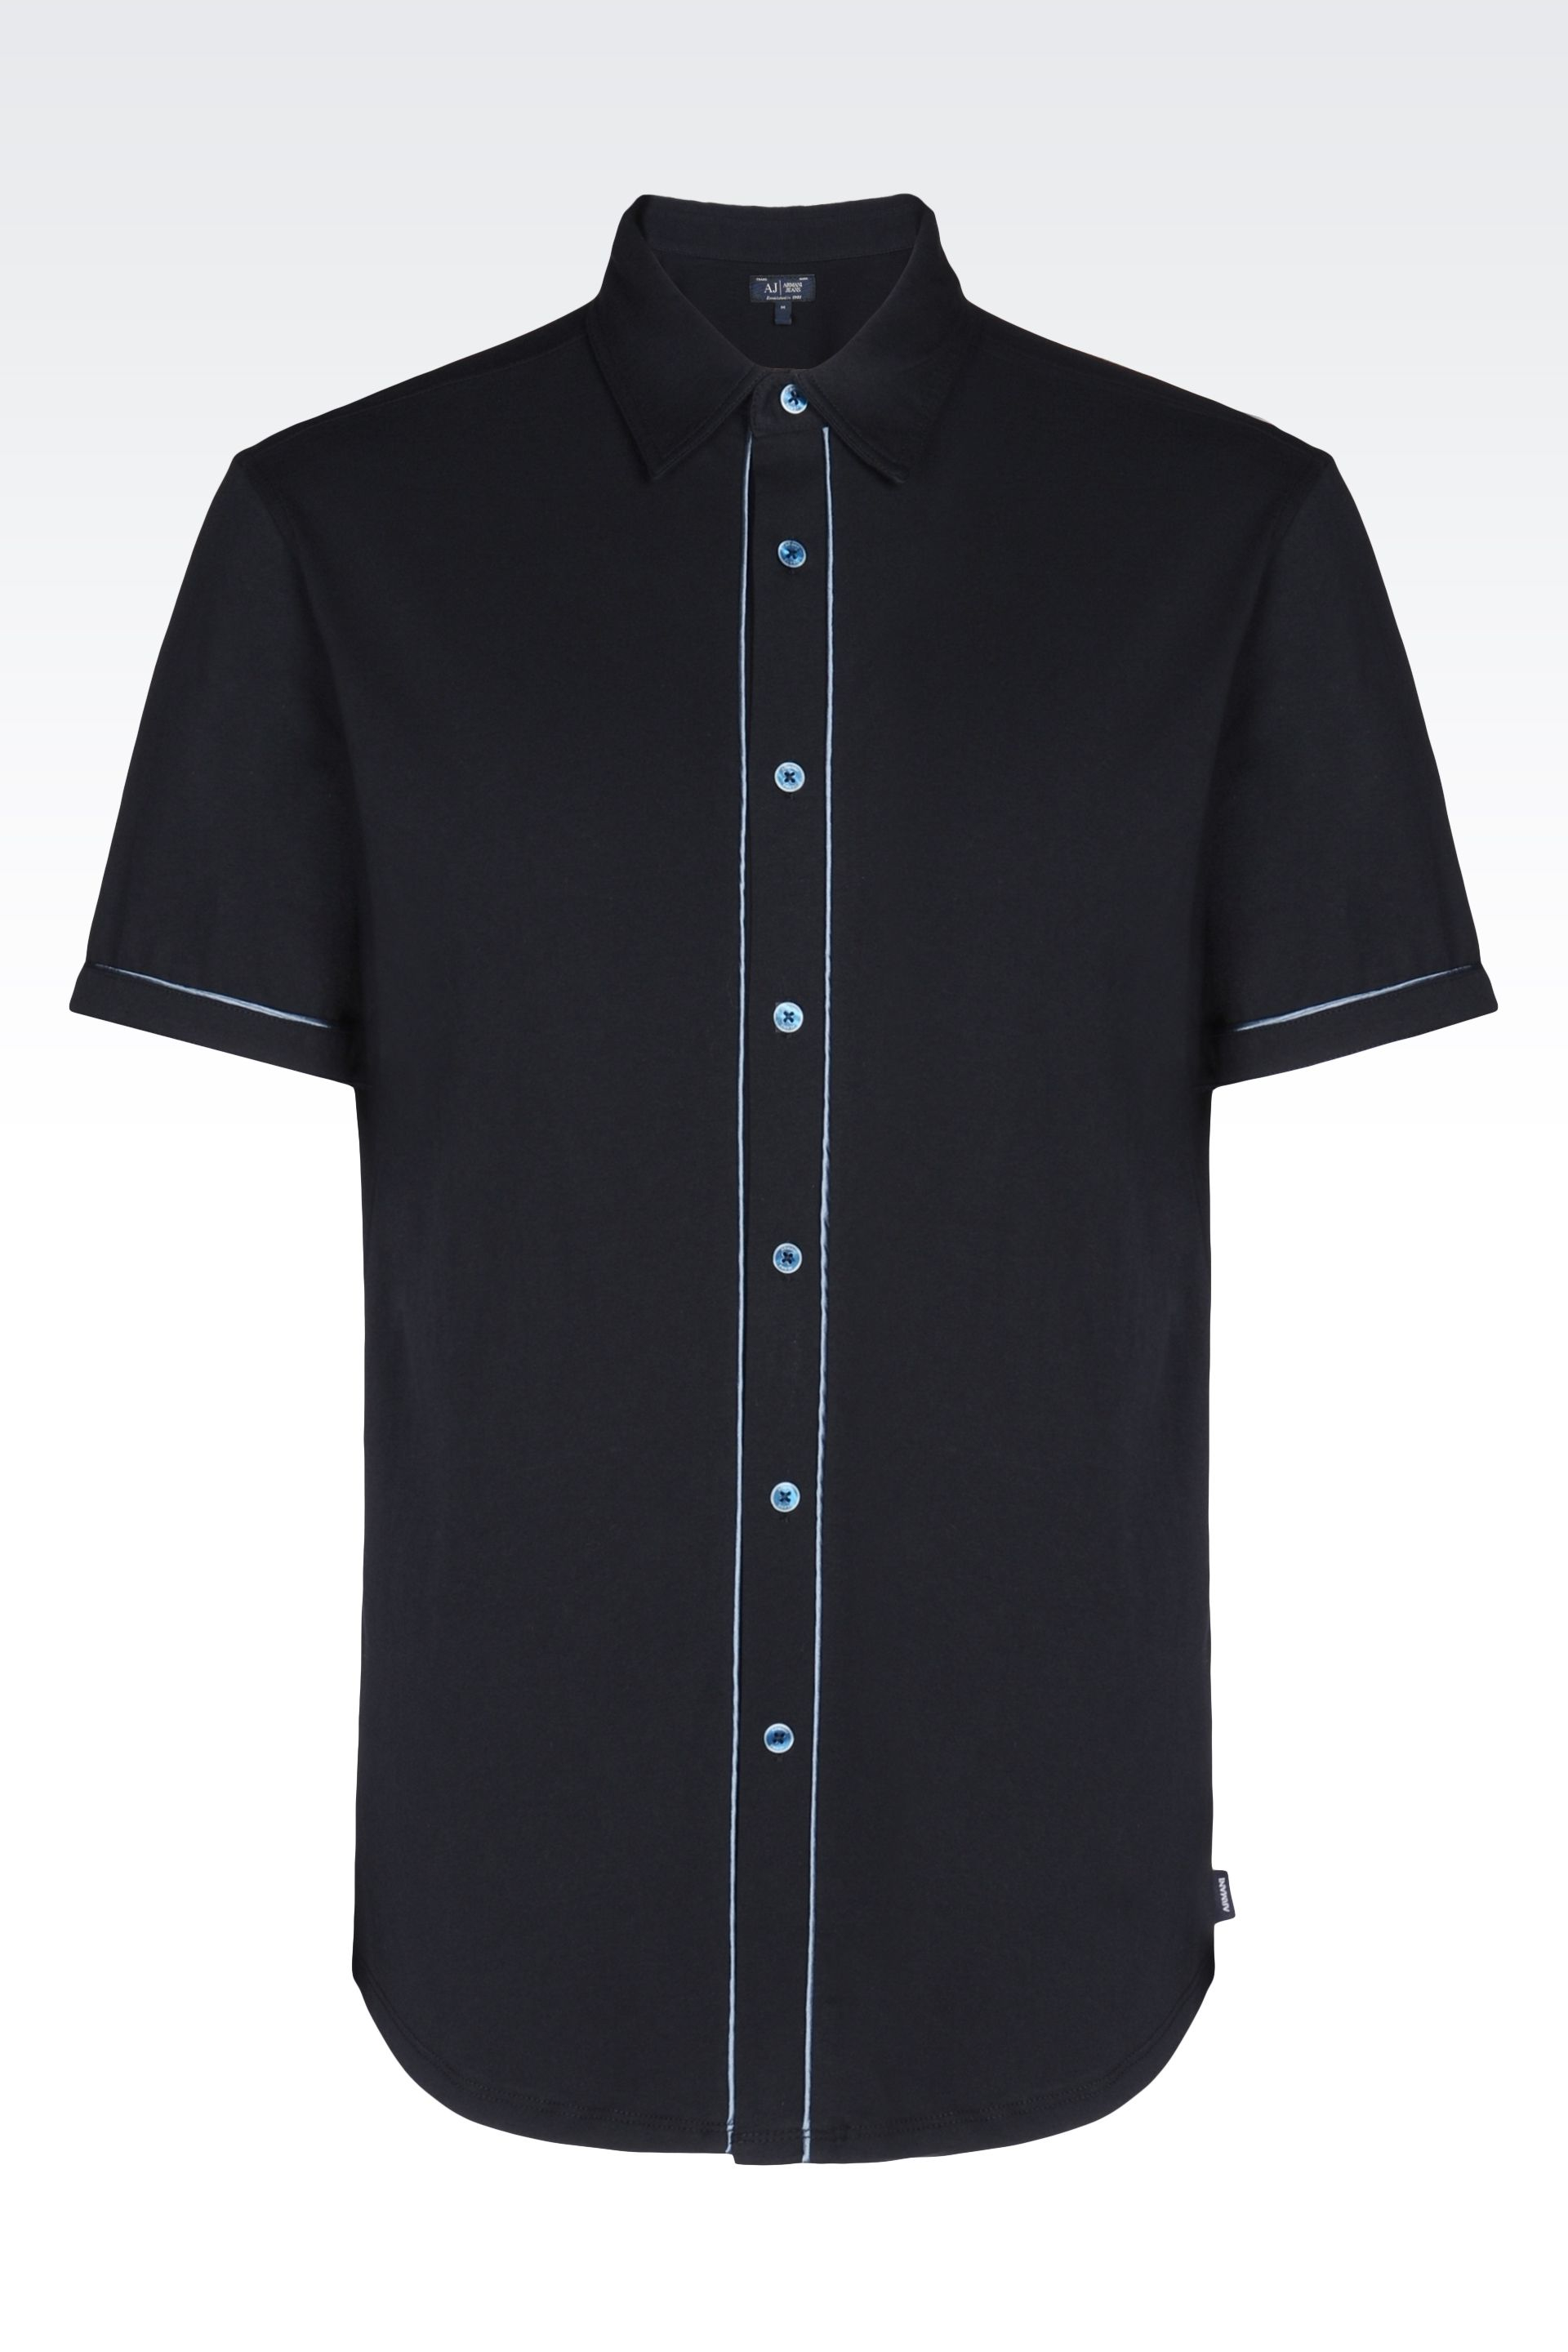 armani jersey shirt in black for lyst